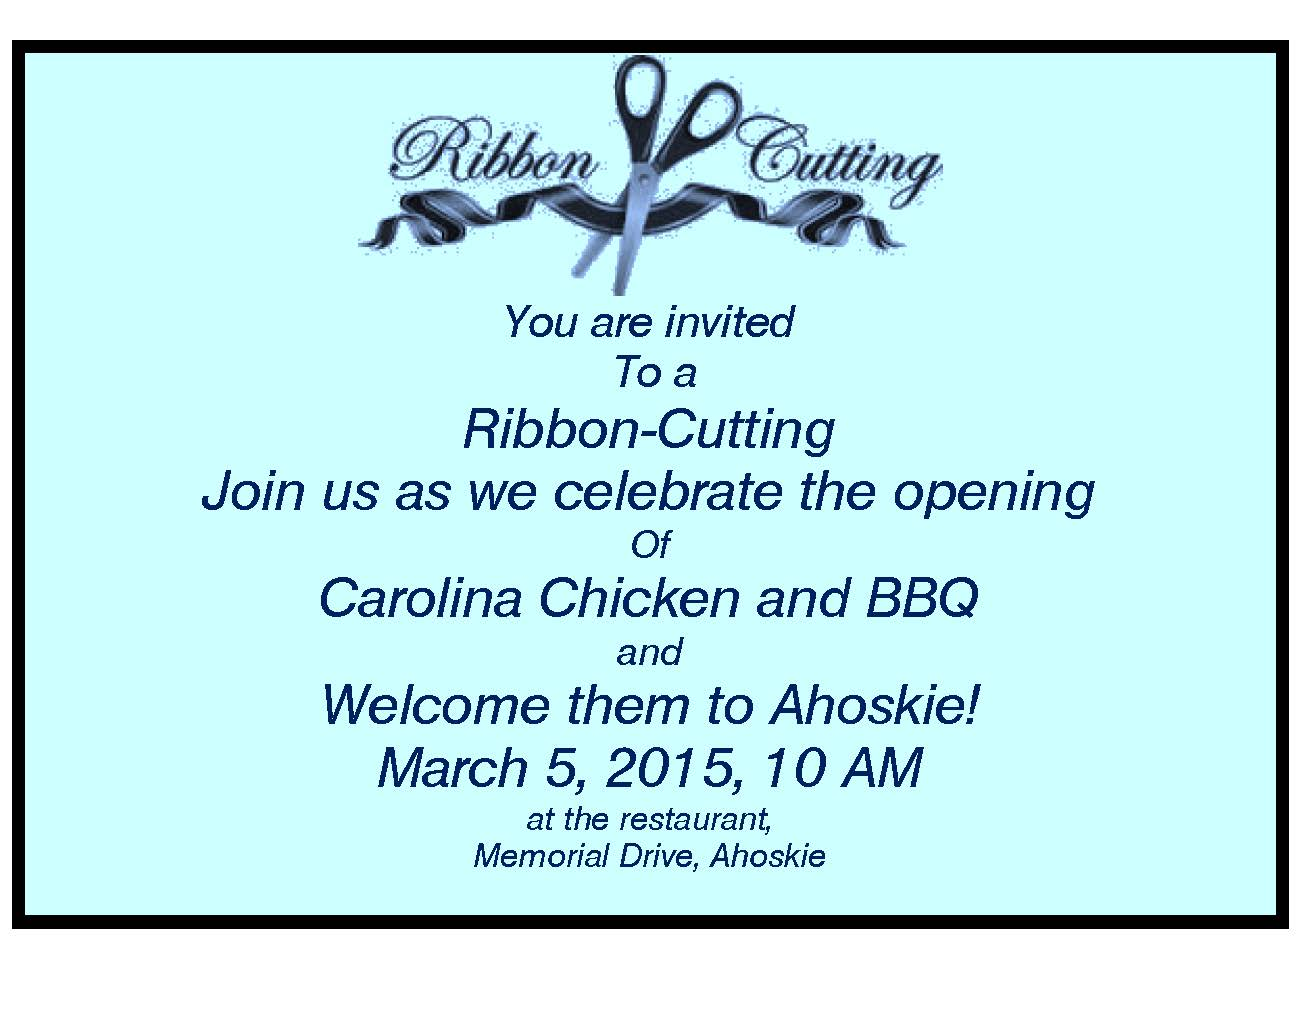 Carolina Chicken and BBQ Ribbon-Cutting